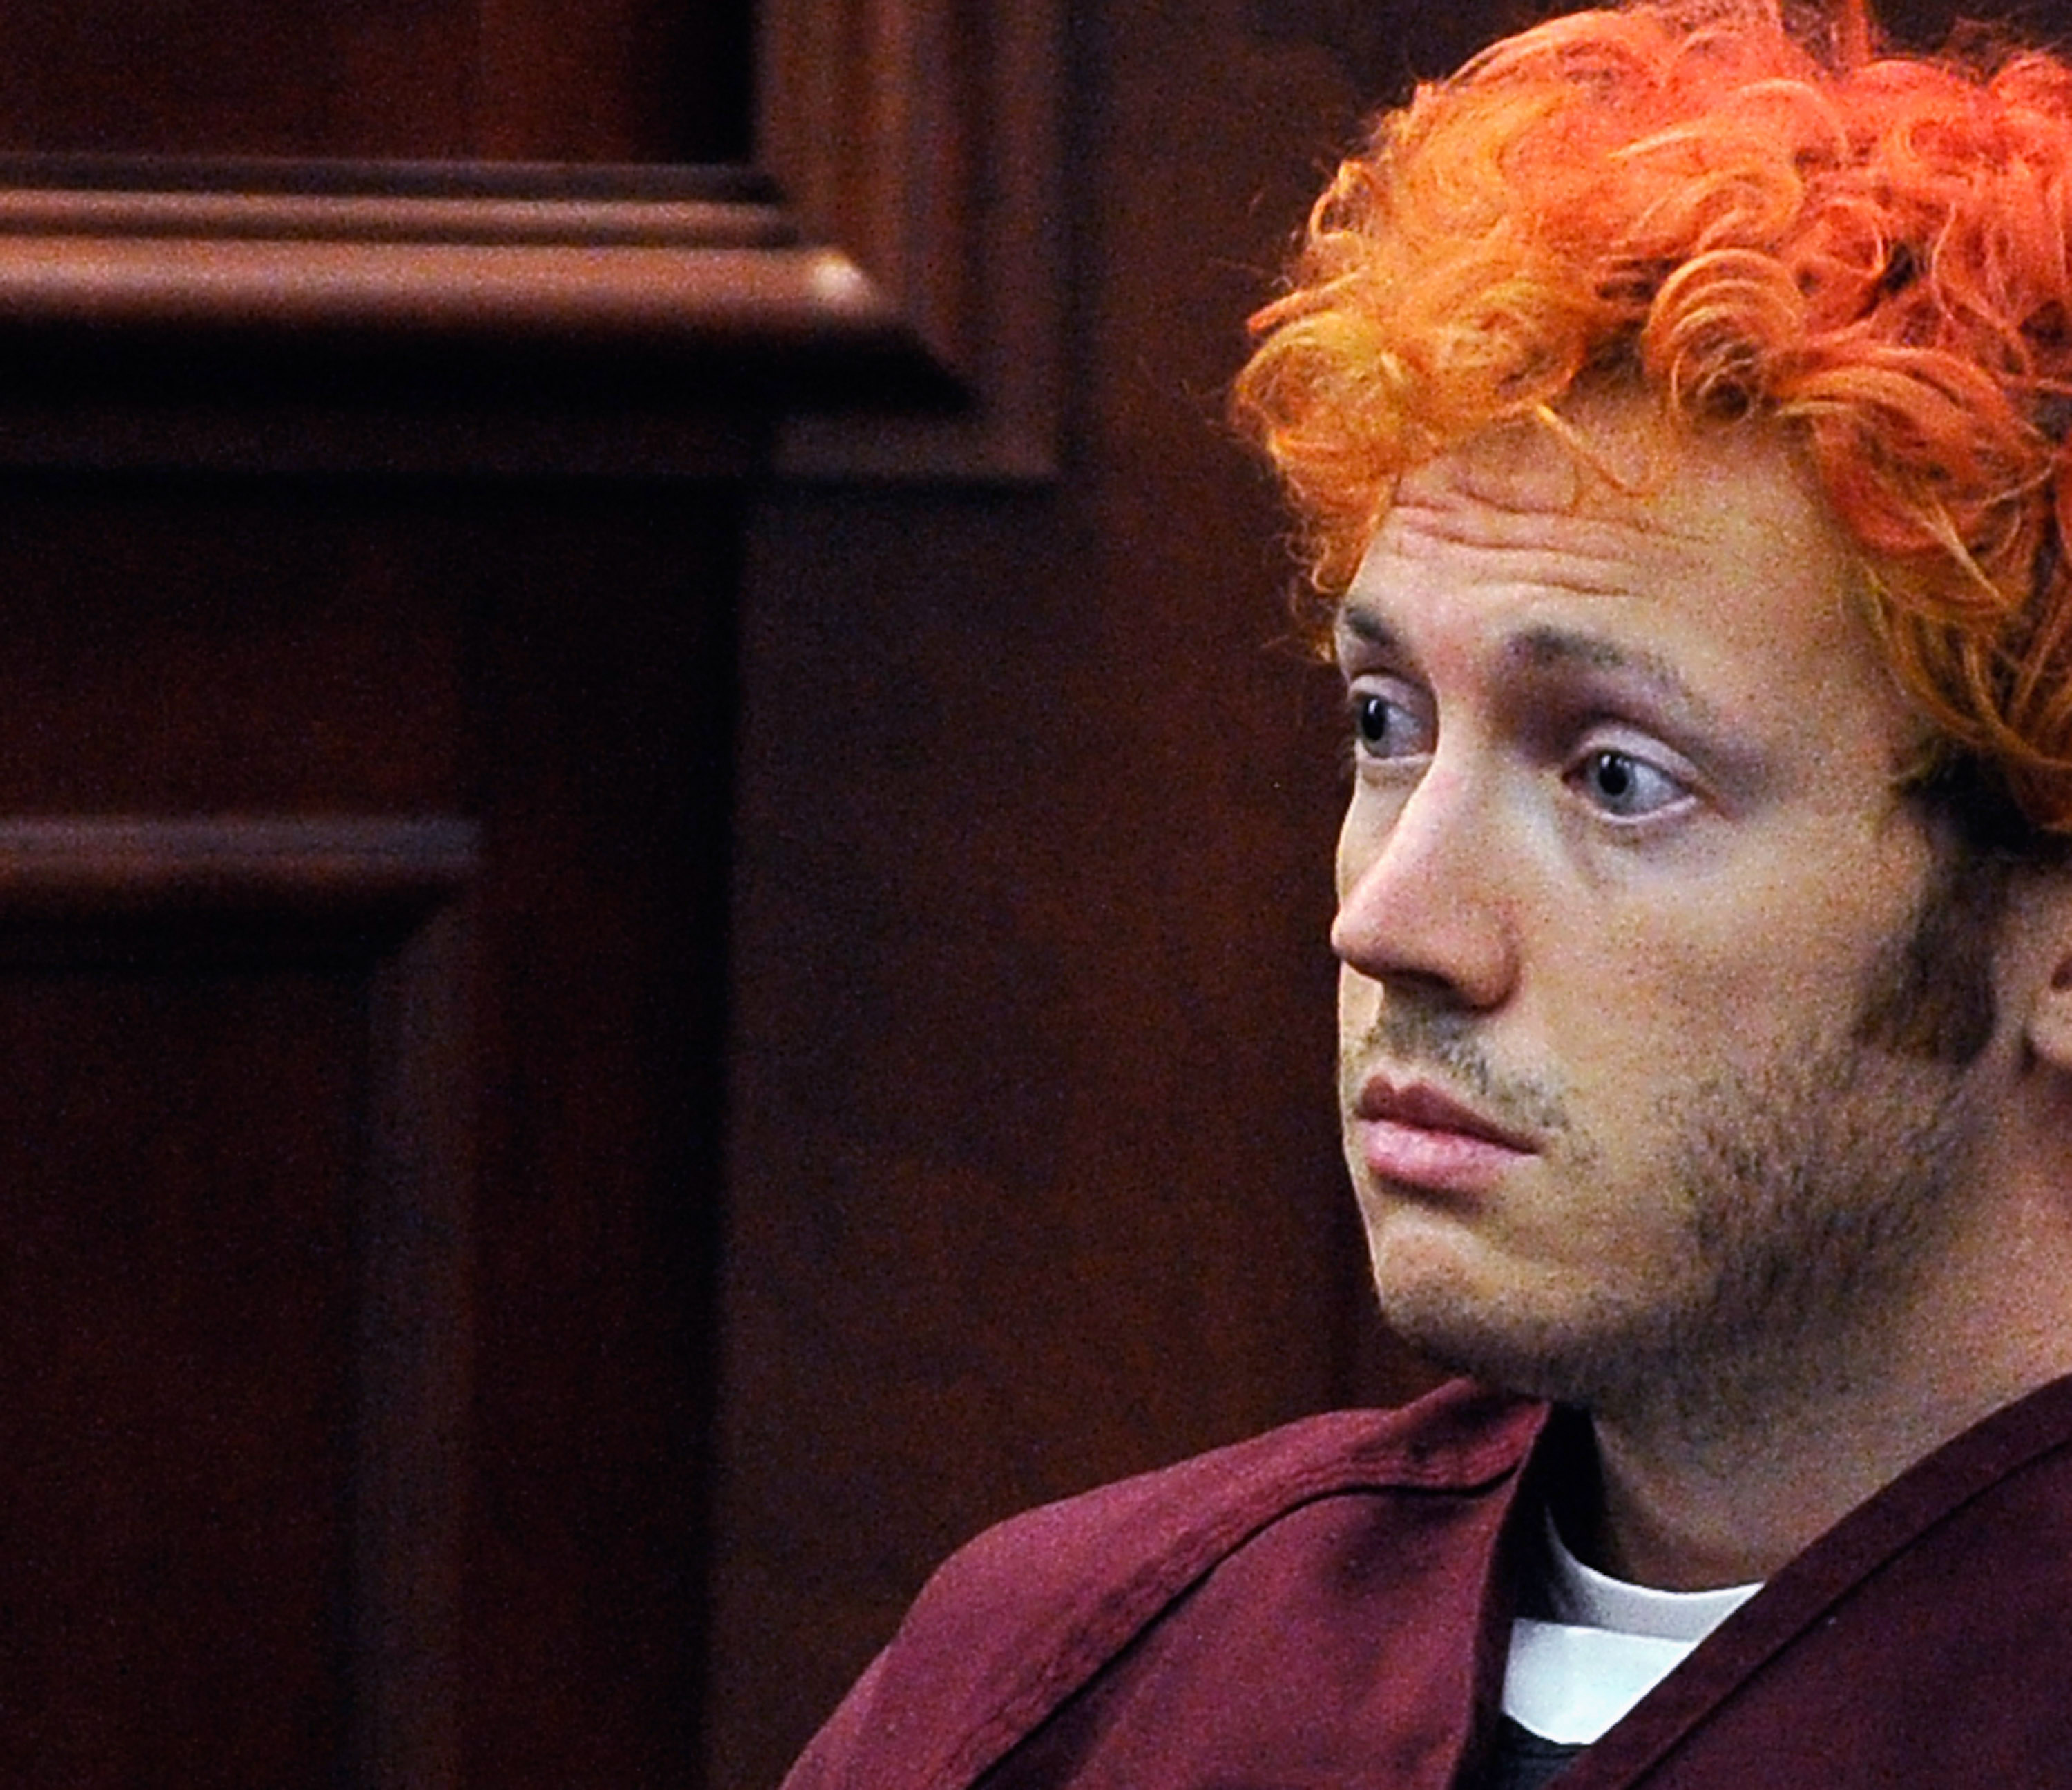 File photo of James Holmes. (credit: RJ Sangosti-Pool/Getty Images)